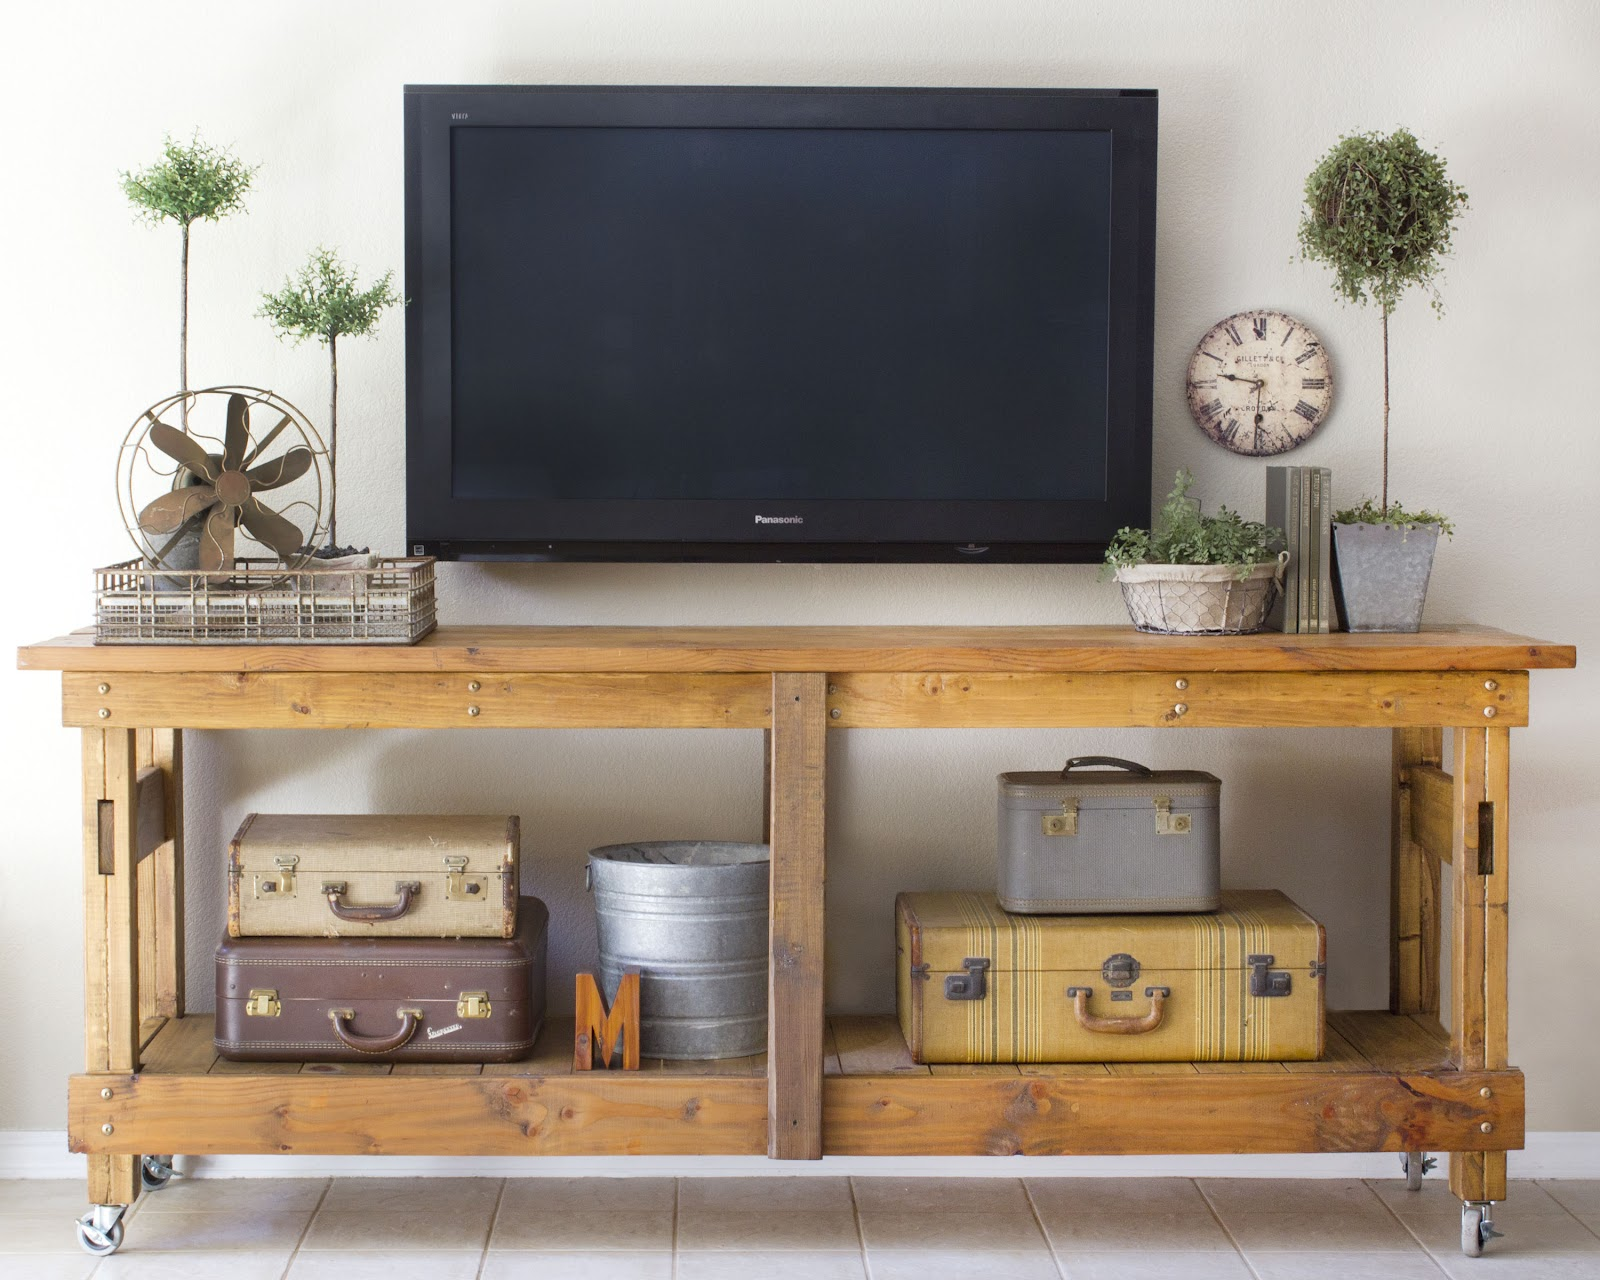 Tv Decorating Ideas Remodelaholic 95 Ways To Hide Or Decorate Around The Tv